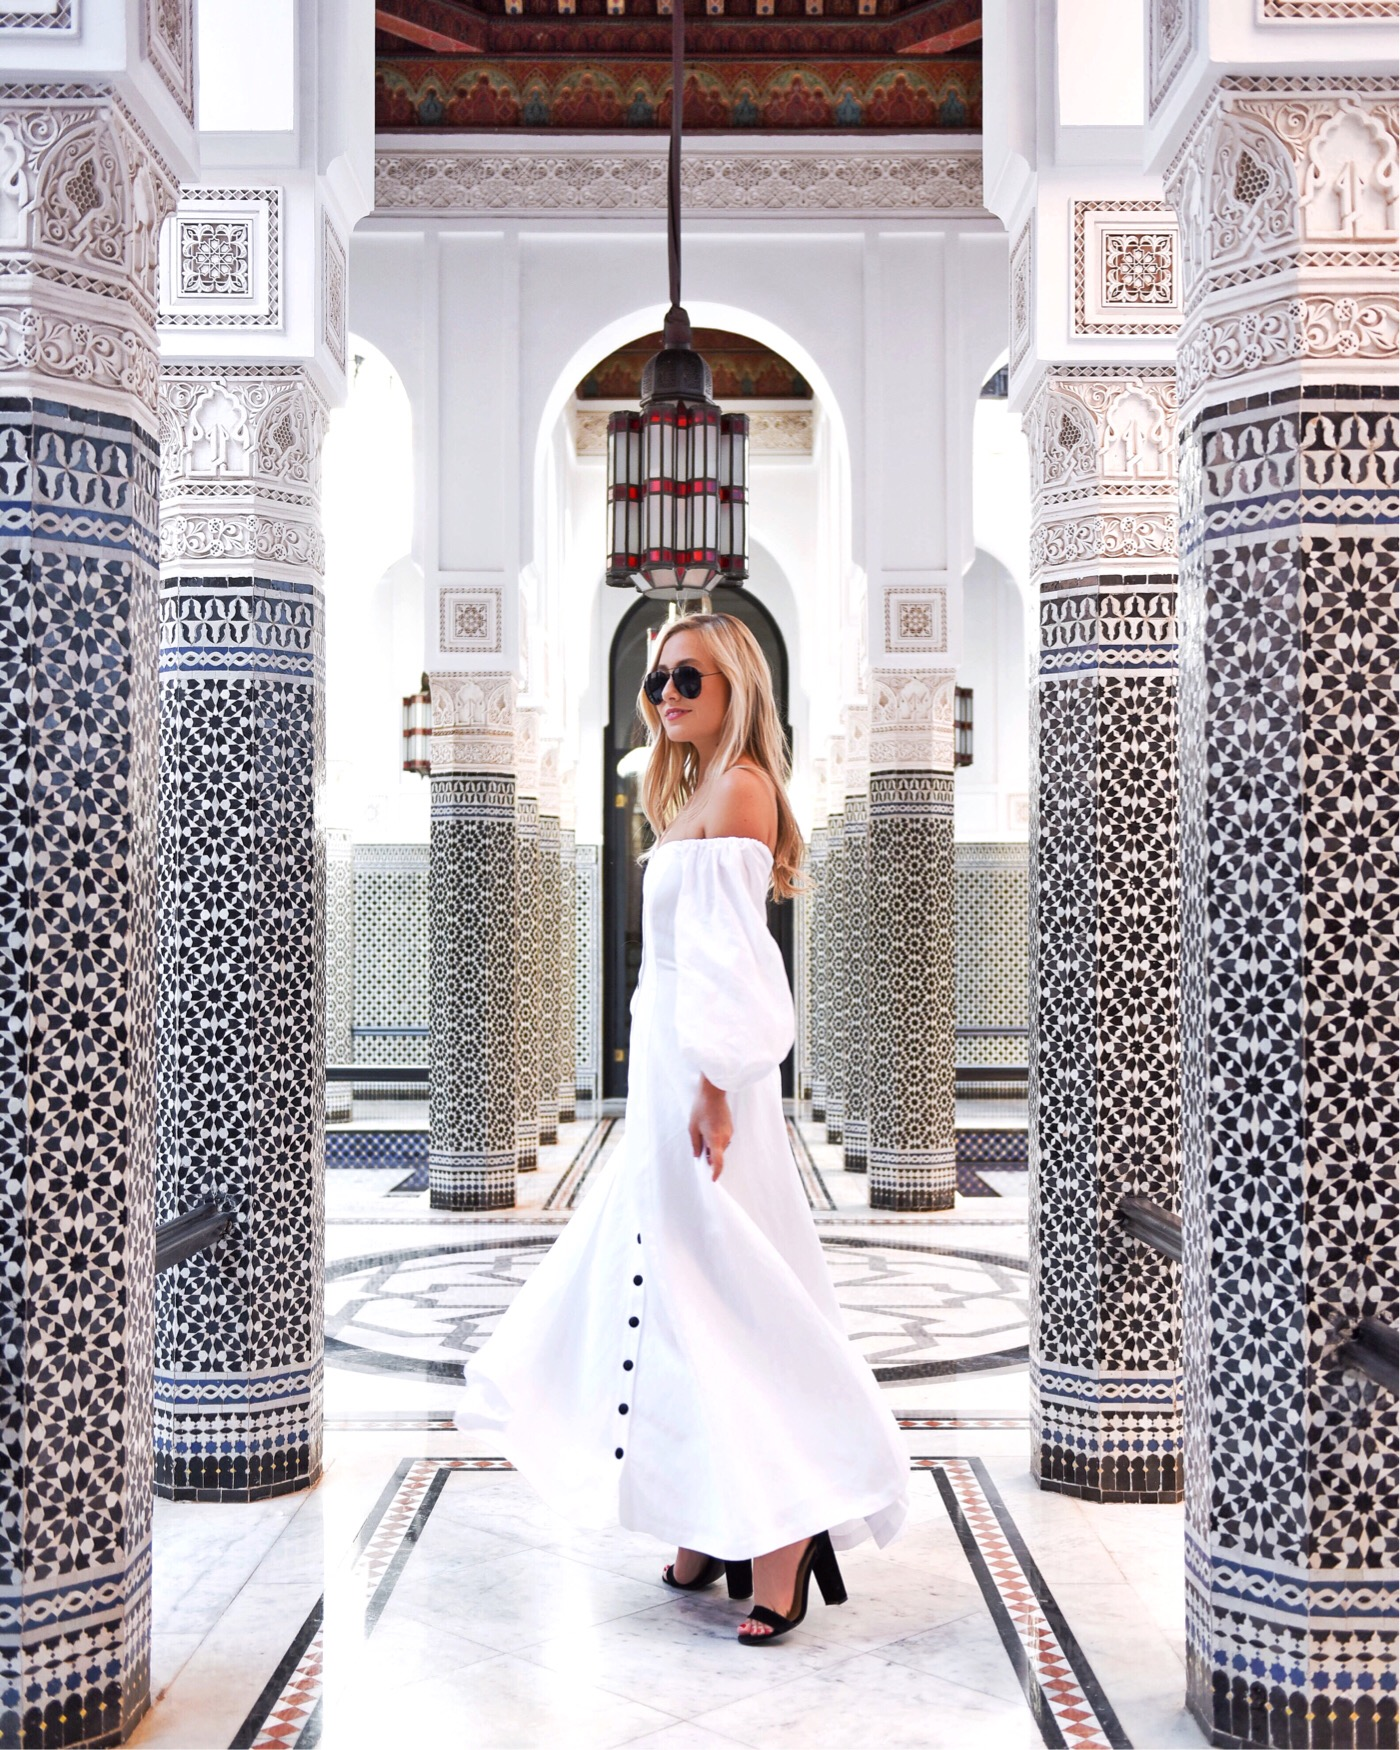 Lo-Murphy-Marrakech-Travel-Blogger-La-Mamounia